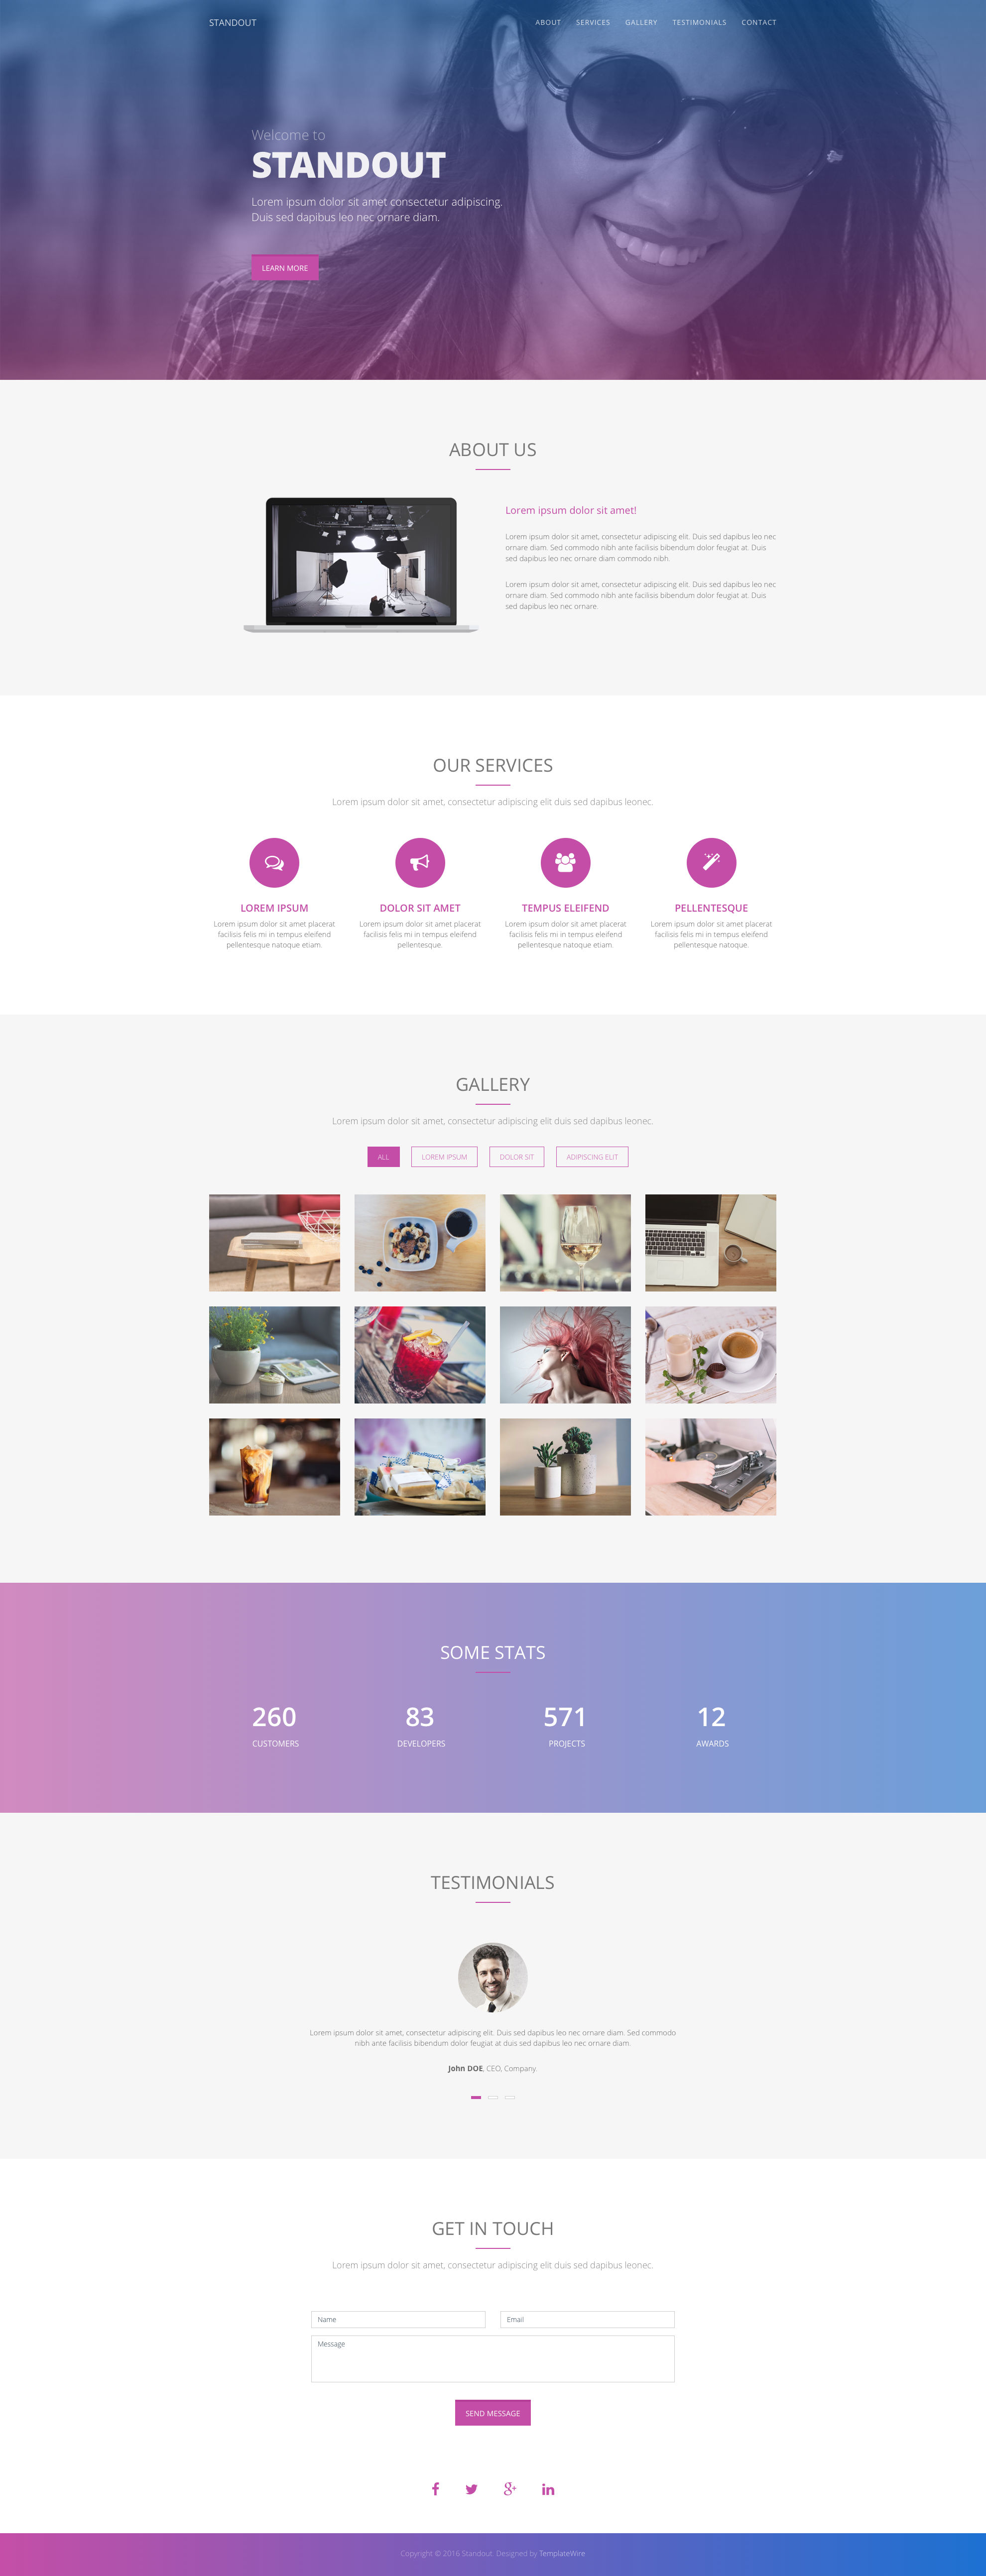 Standout is a free responsive HTML5 Bootstrap one-page HTML5 website template that can be fit for many business related websites. It comes with 6 sections: About, Services, Gallery, Stats, Testimonials and Contact. Standout free HTML template is fully responsive, retina ready and comes with the popular Bootstrap CSS Grid System.